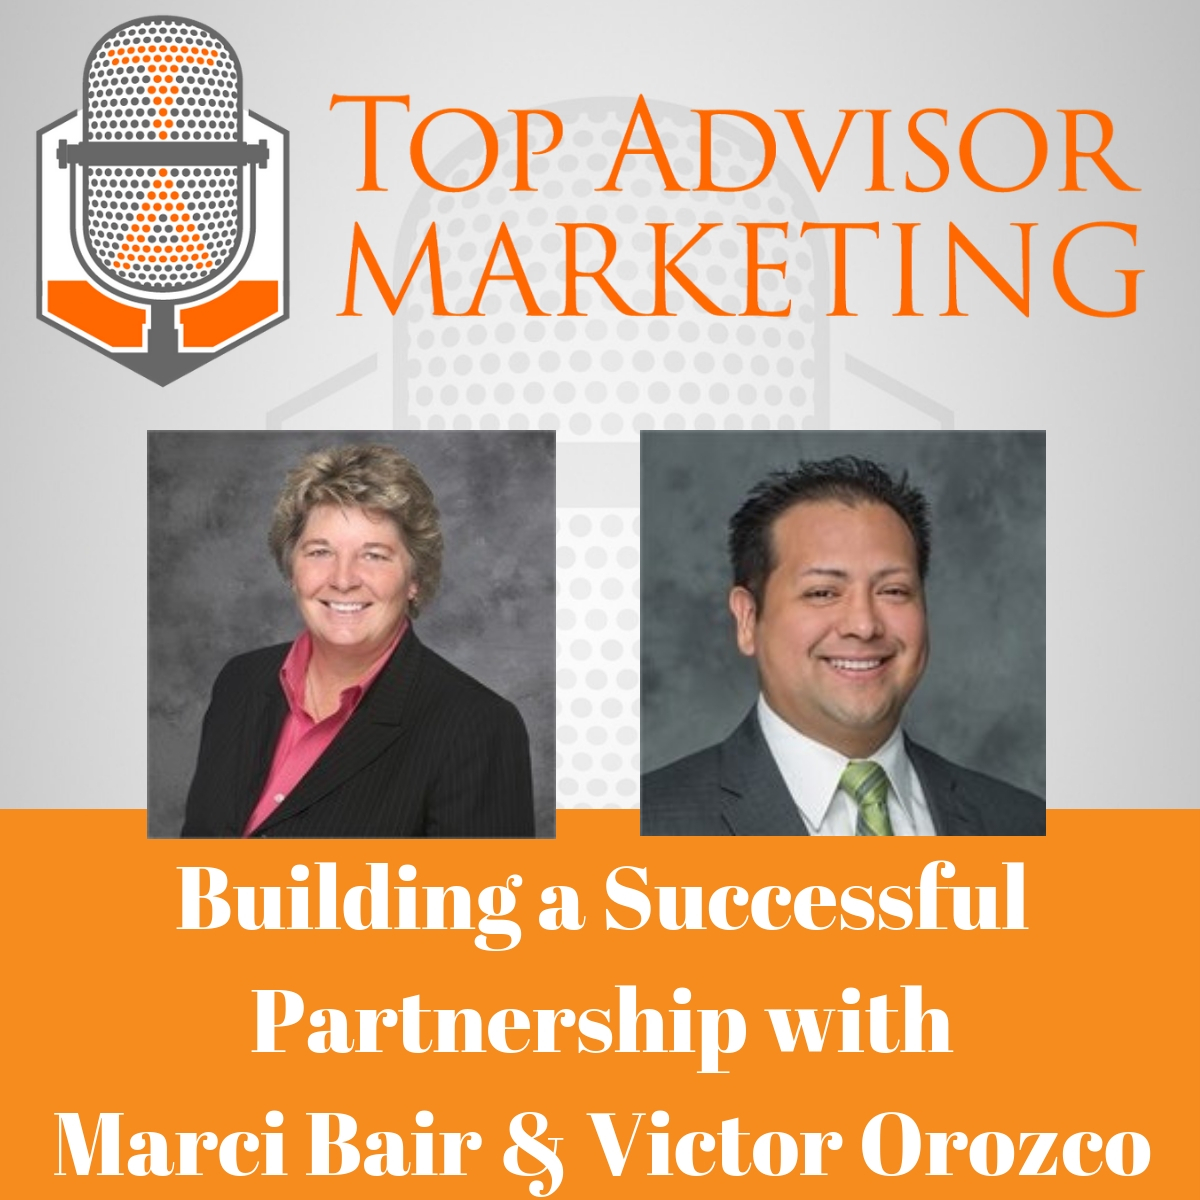 Episode 134 - Building a Successful Partnership with Marci Bair & Victor Orozco